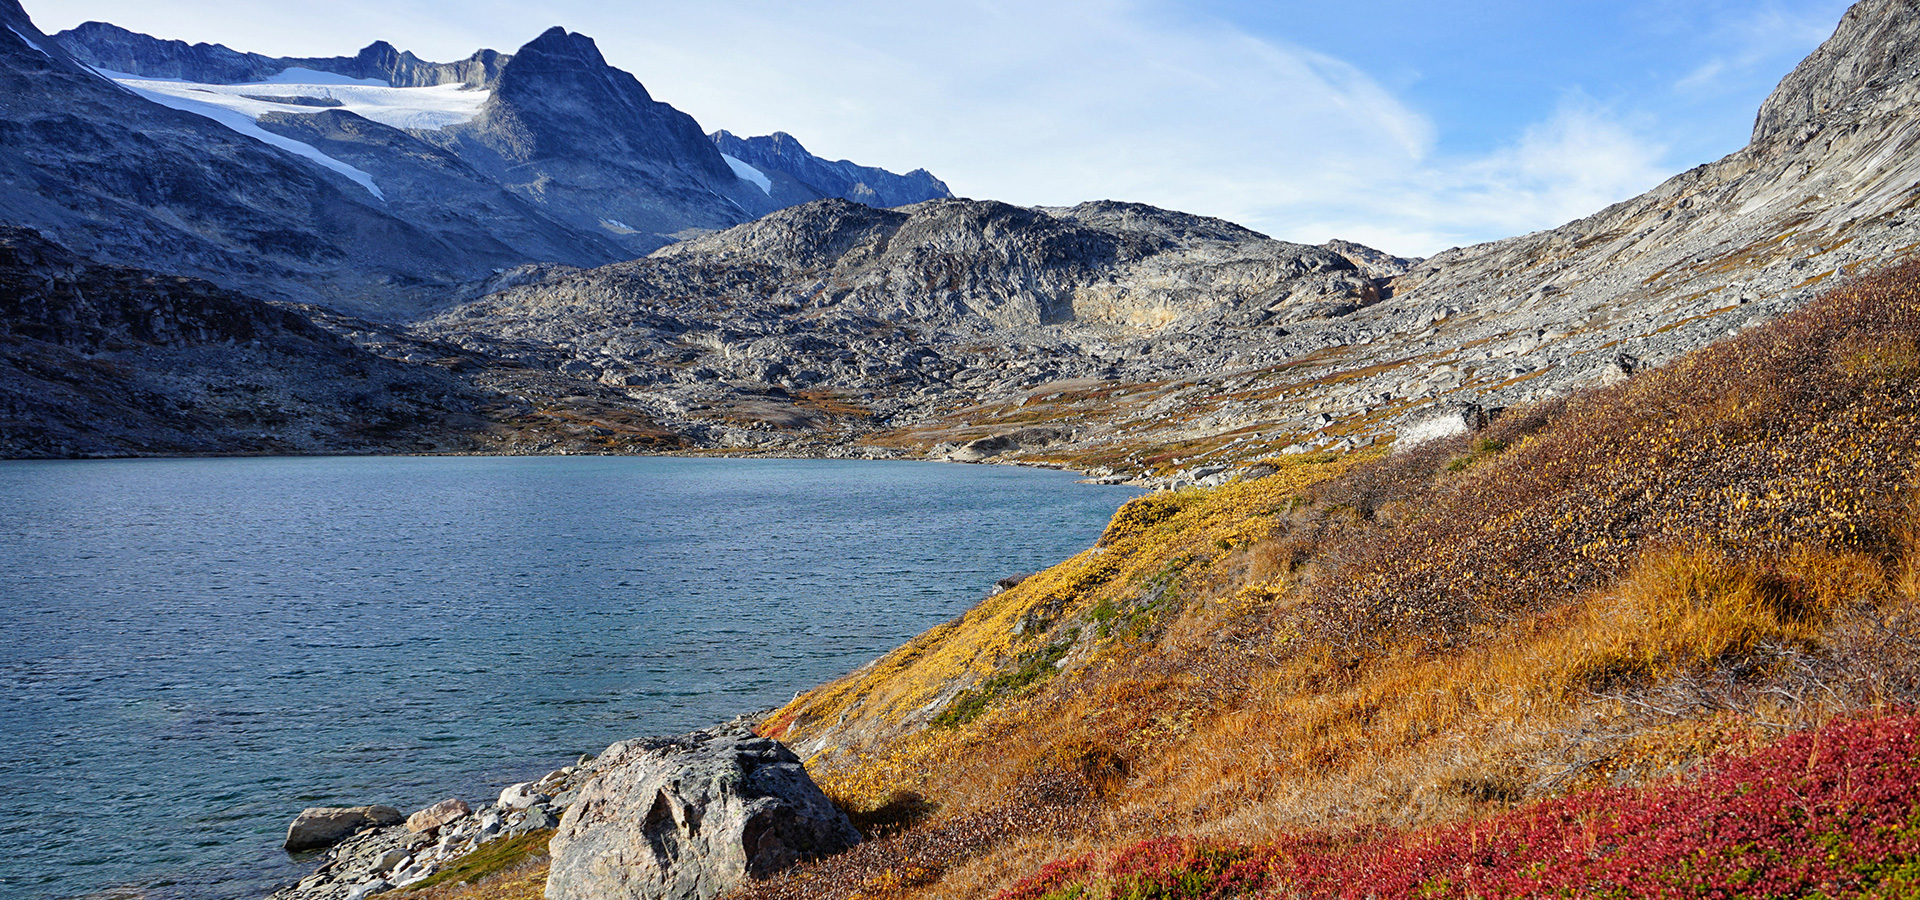 The Red House - Eastgreenland - Geografie - Klima - Herbst